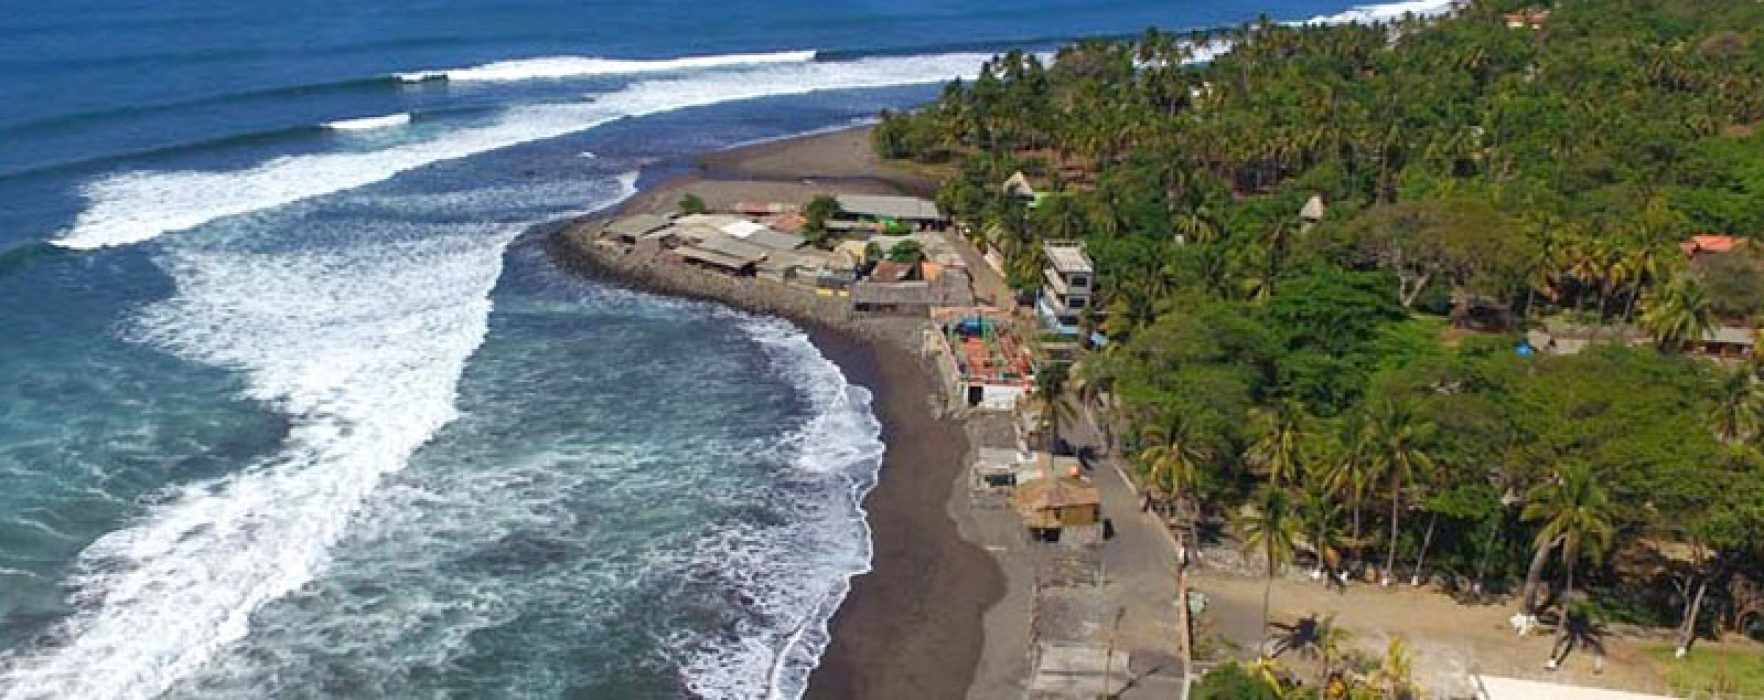 El Zonte from the air. We offer 2 great accommodation option all located right on the beach and within a minute of each other.